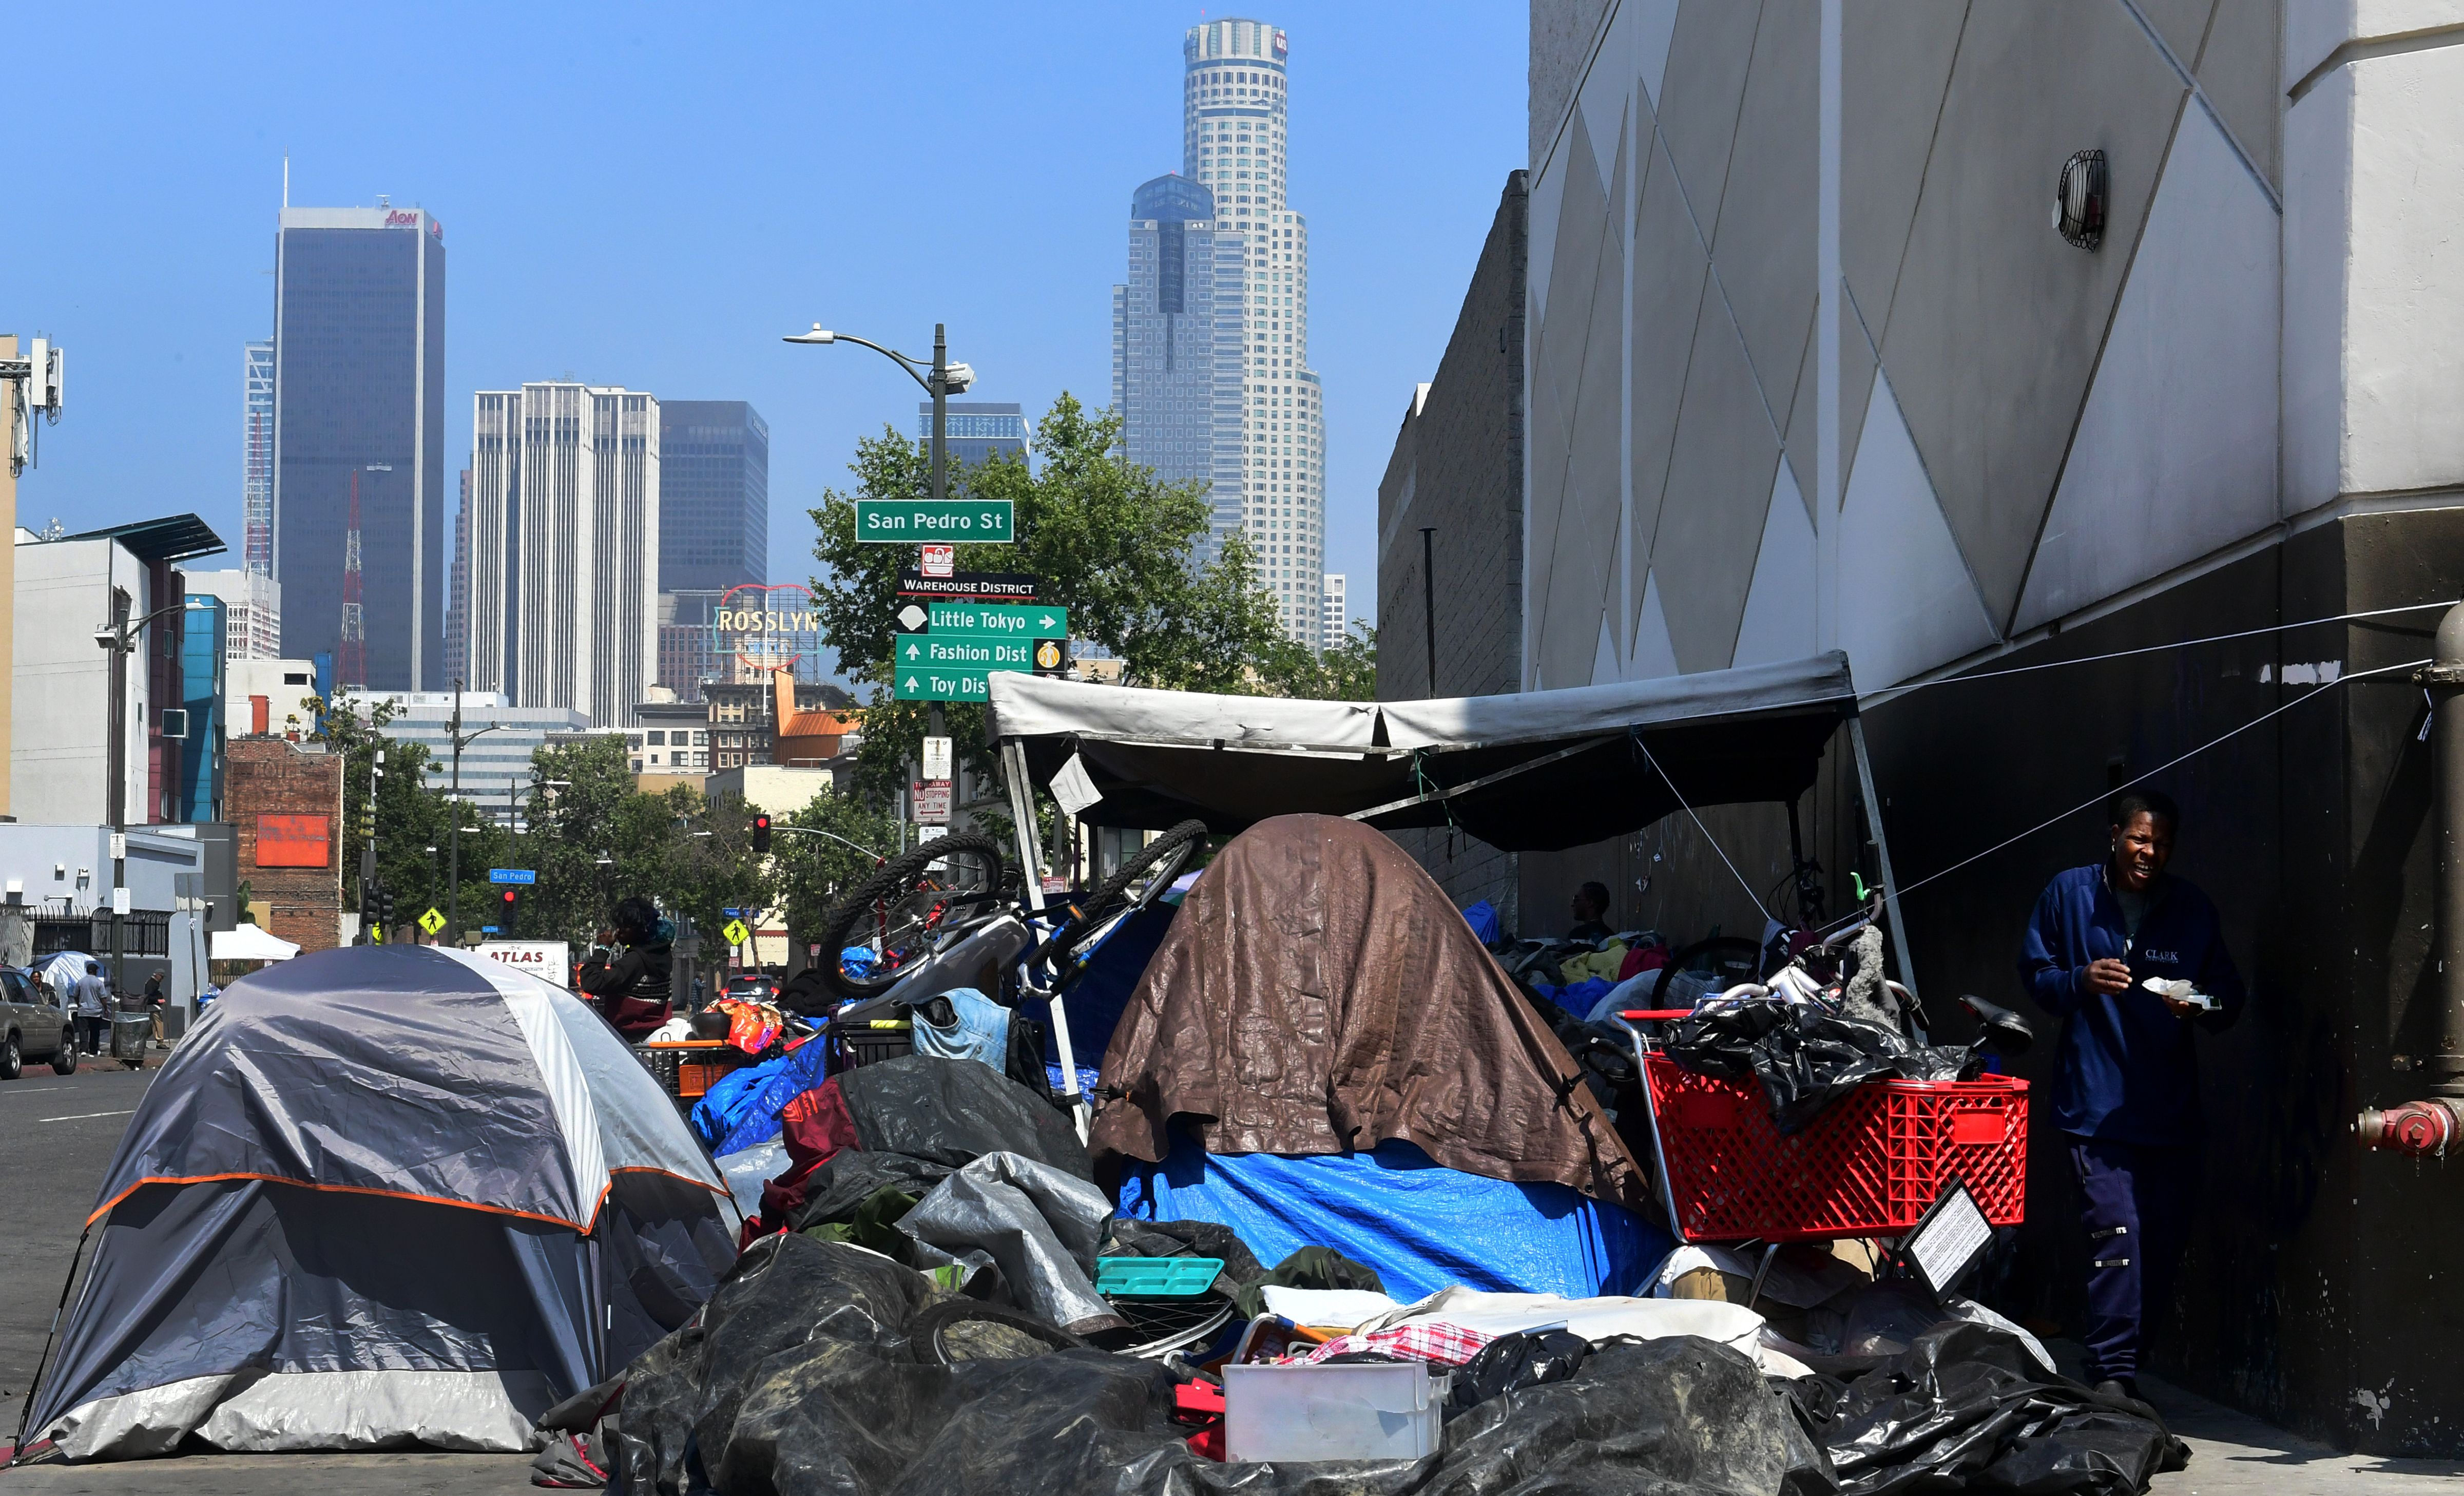 Streets full of tents: The other side of L.A. - CNN Video